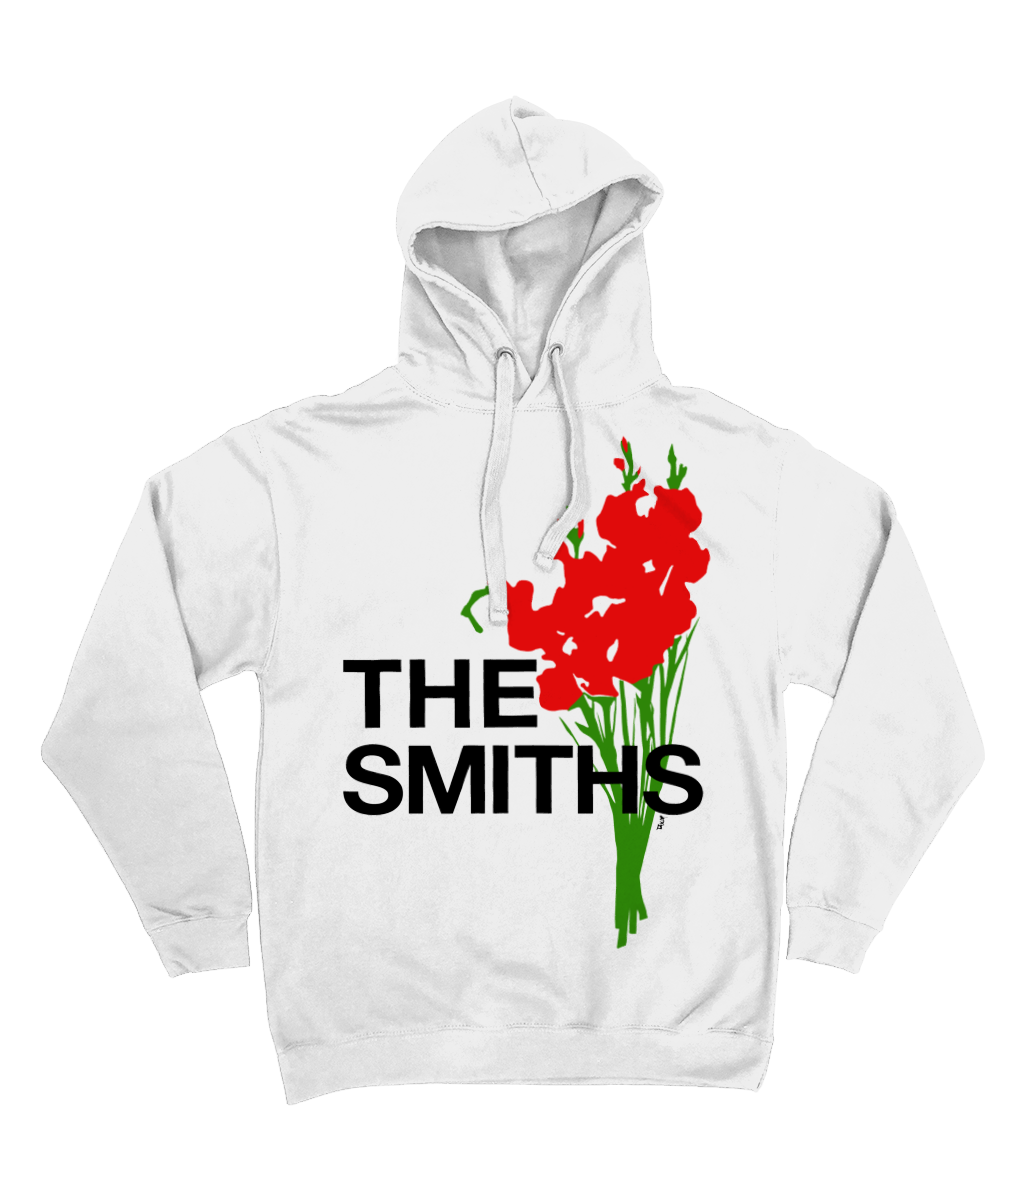 THE SMITHS - UK Tour - 1984 - Hoodie - MORRISSEY